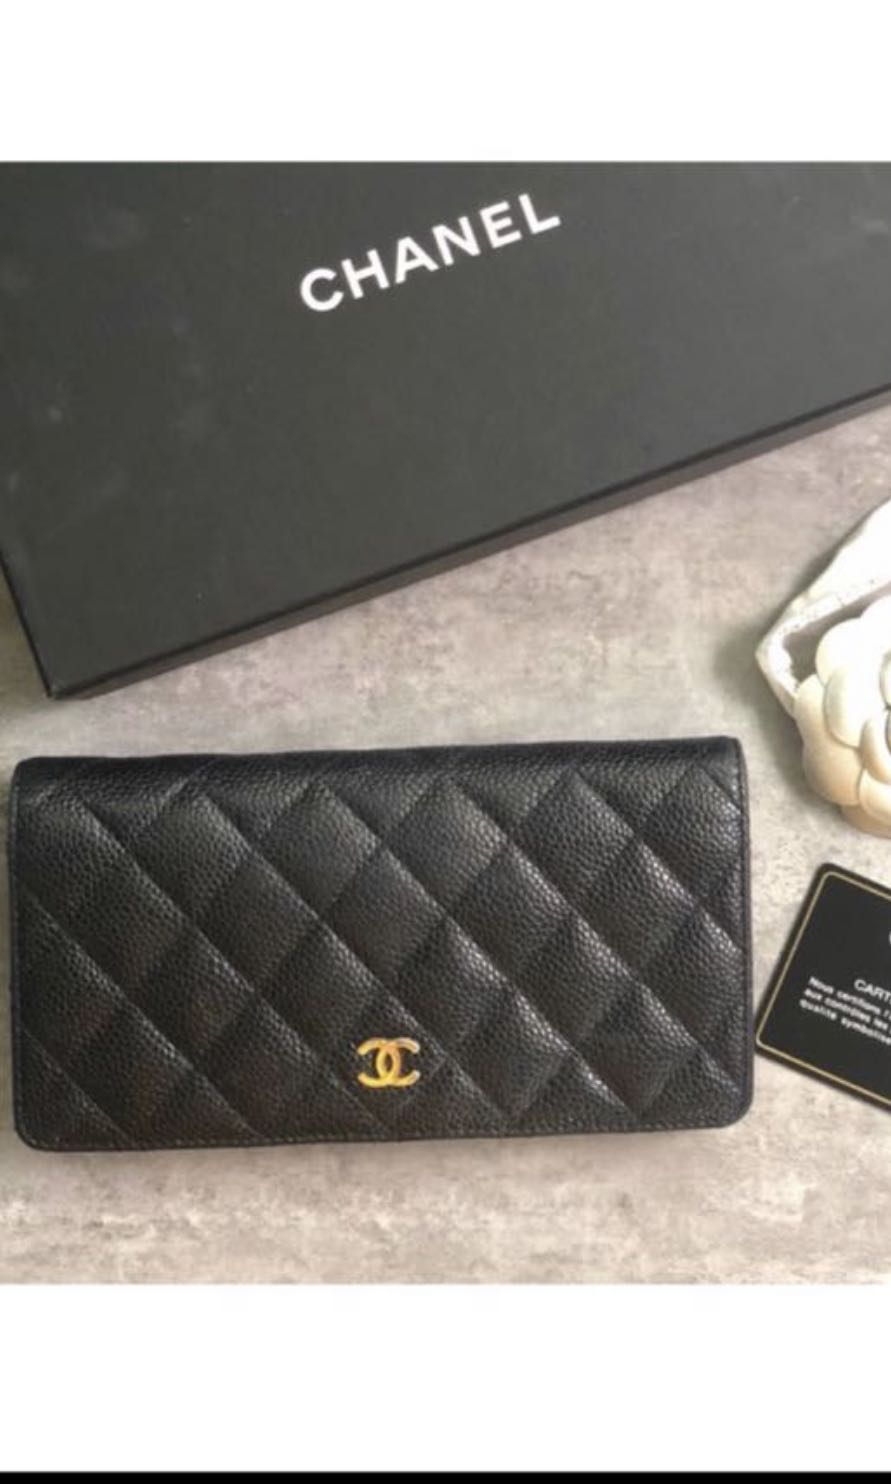 5e88931adb99 Chanel yen long flap wallet, Luxury, Bags & Wallets, Wallets on ...